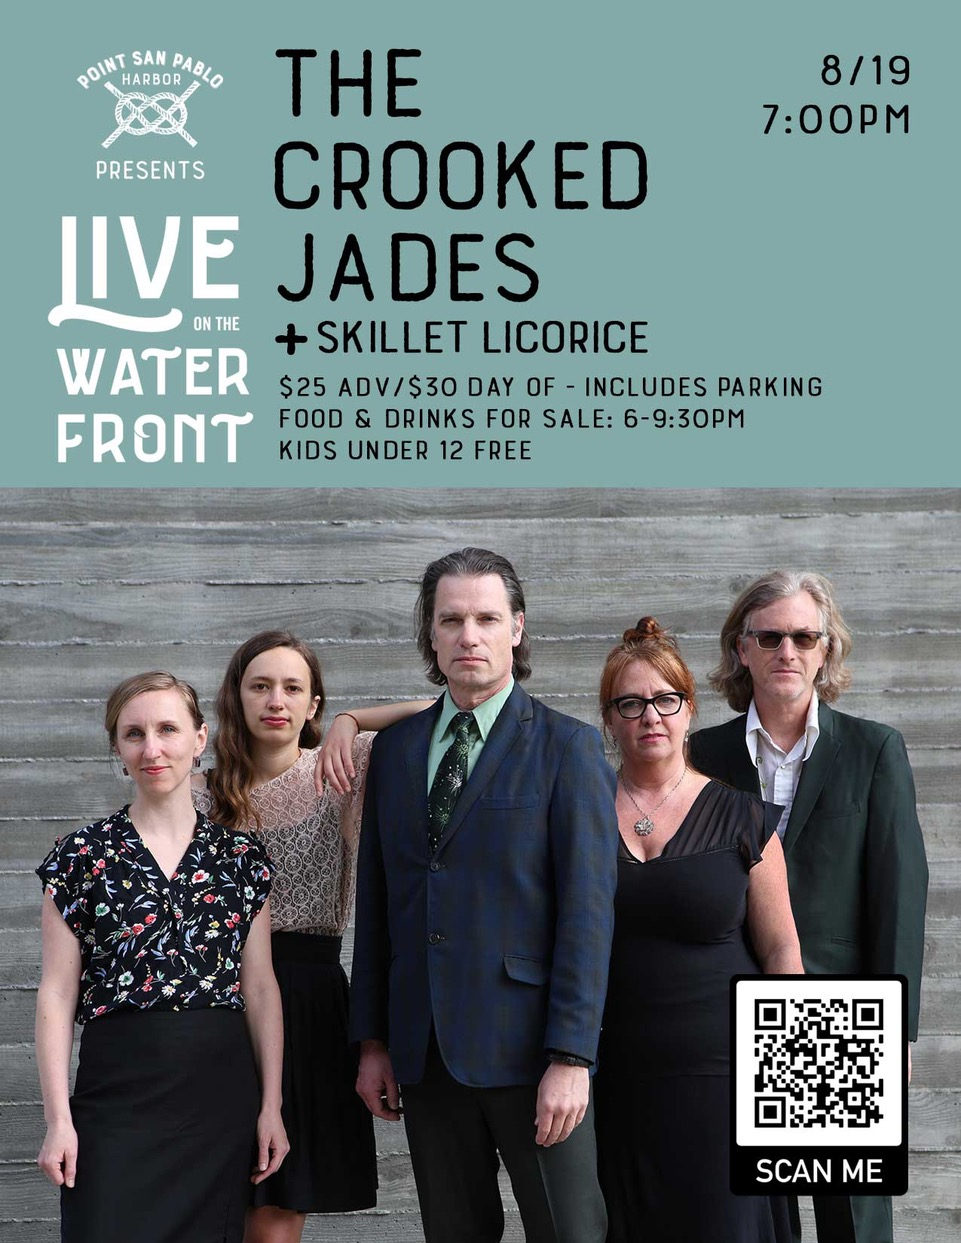 The-Crooked-Jades-web-poster